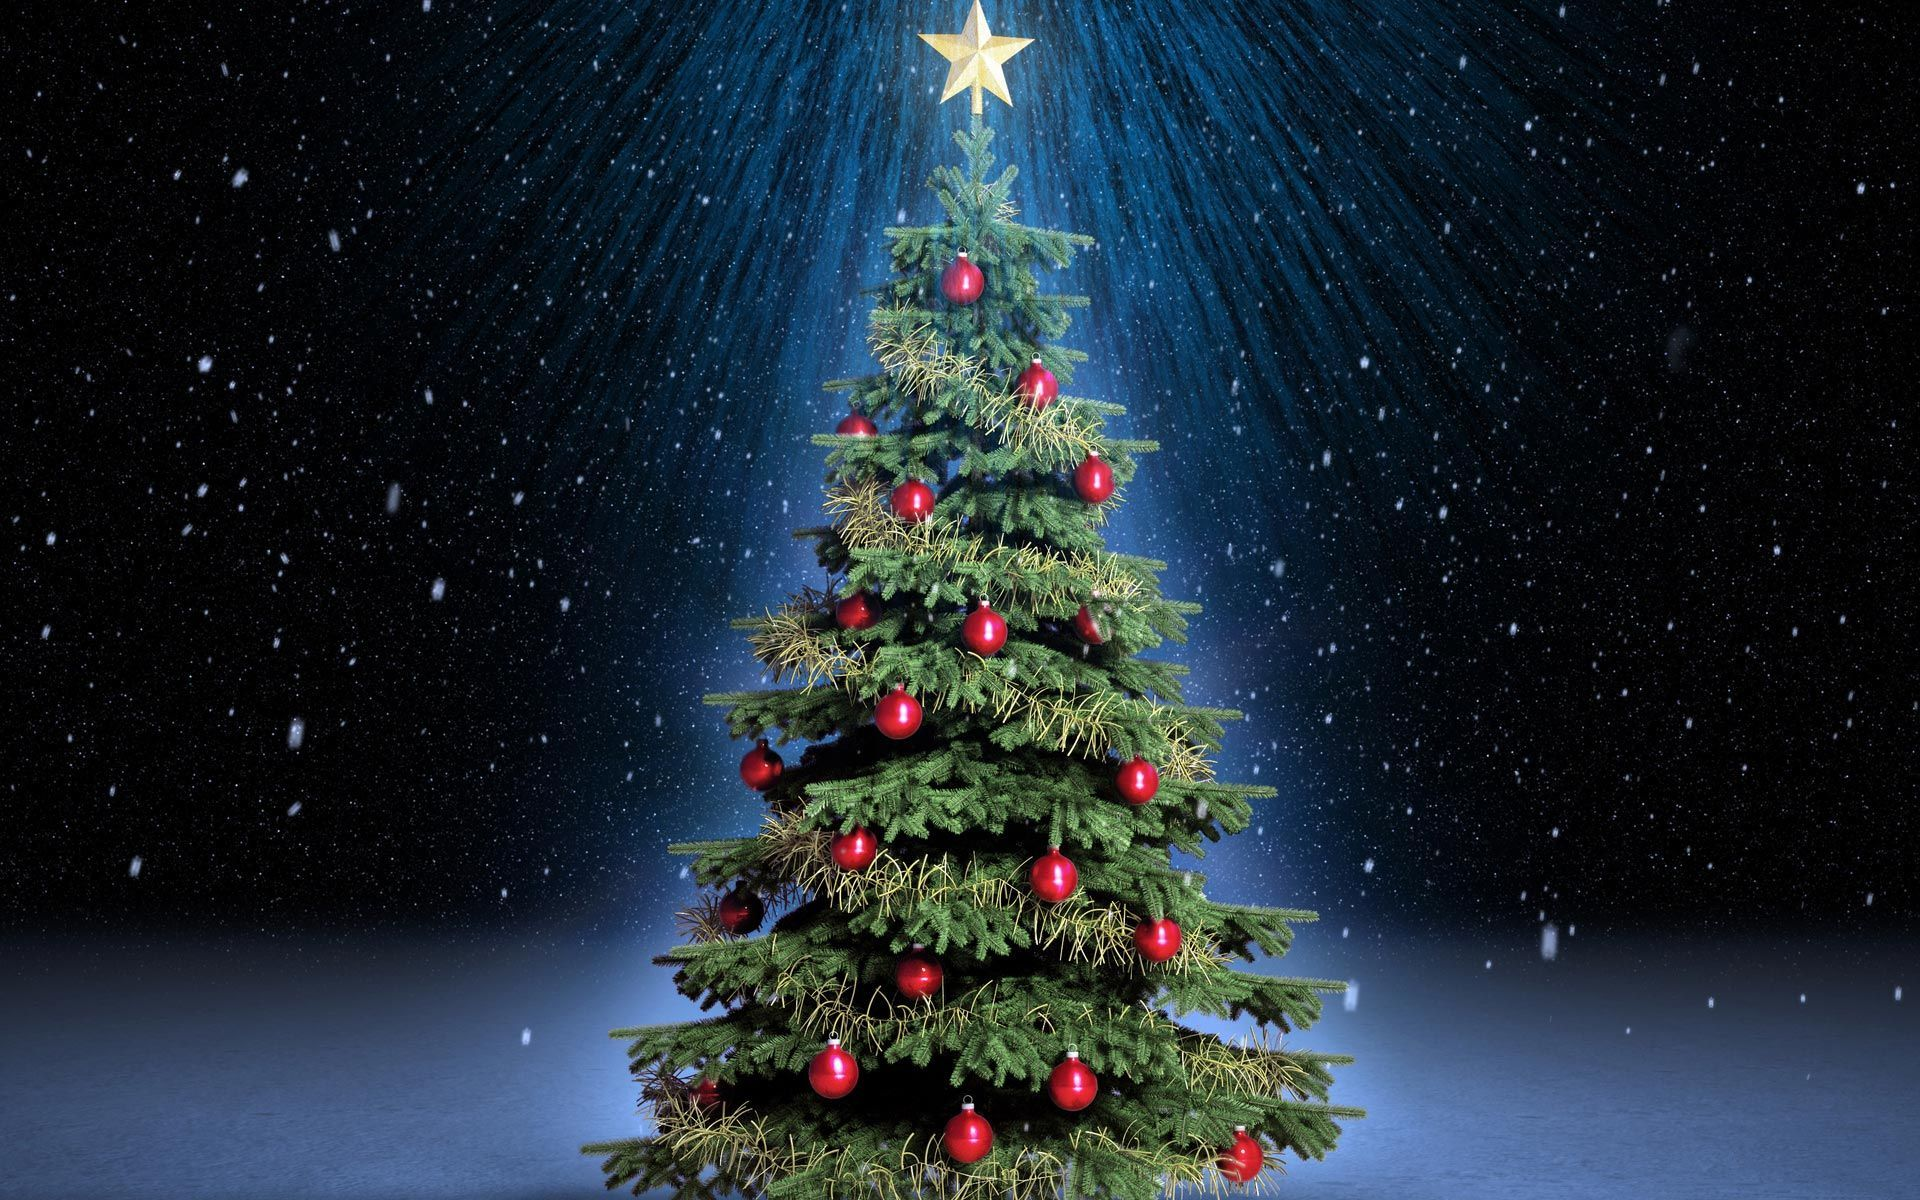 Christmas Tree Backgrounds Wallpapers - Wallpaper Cave